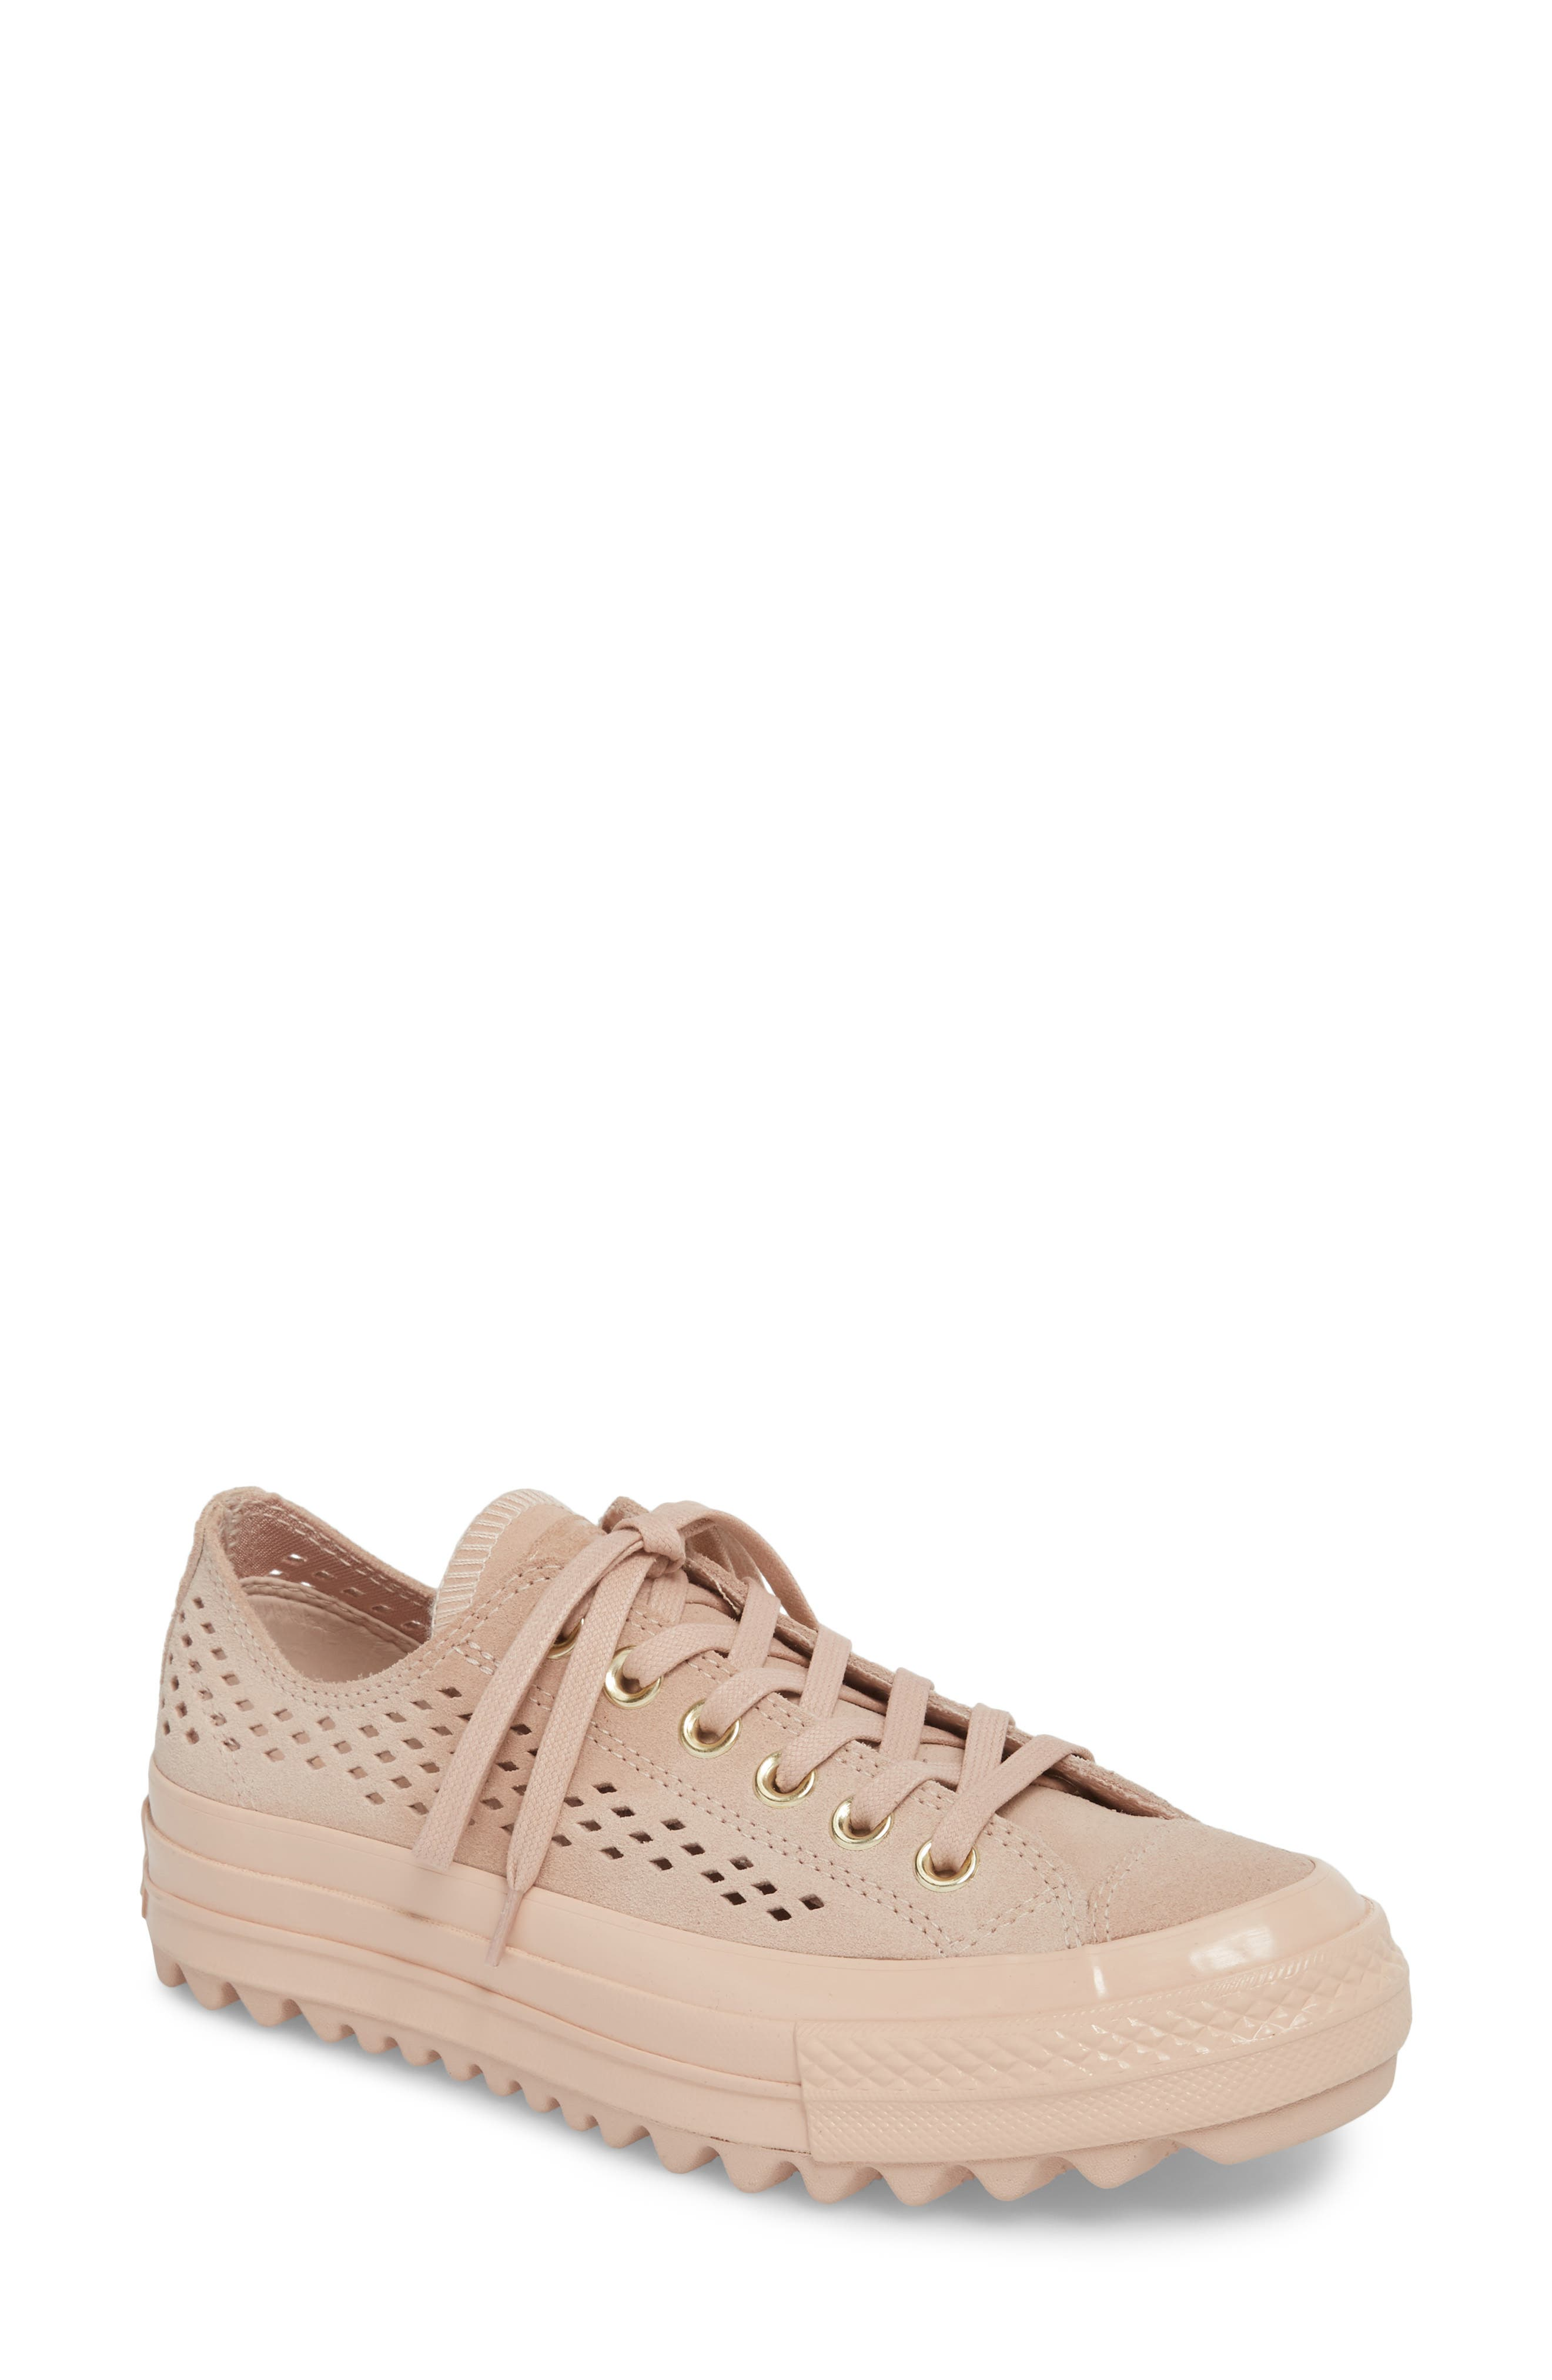 Chuck Taylor<sup>®</sup> All Star<sup>®</sup> Lift Ripple Sneaker,                         Main,                         color, Particle Beige